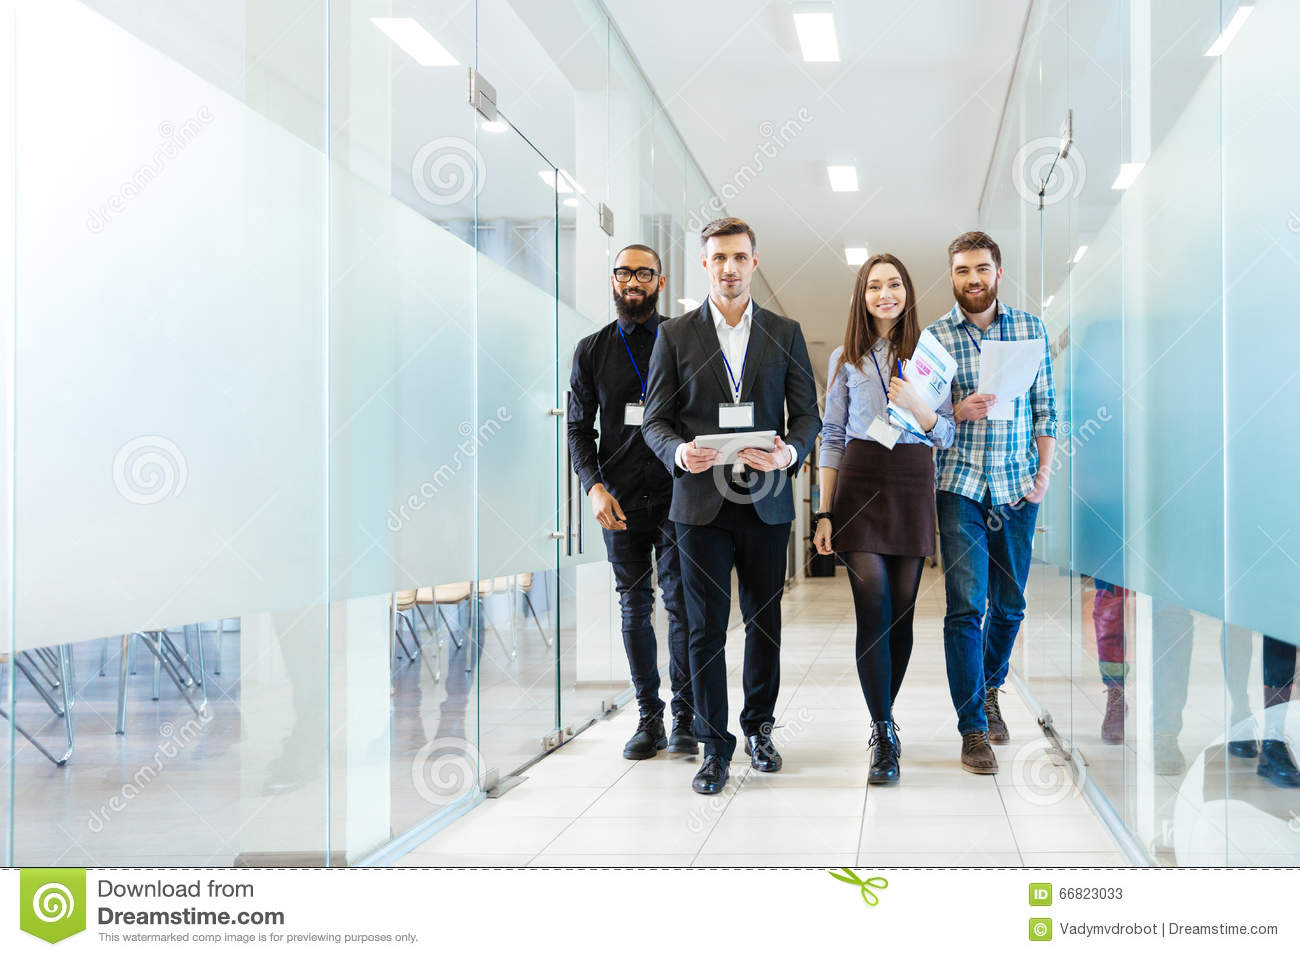 Group of happy young business people walking in office together